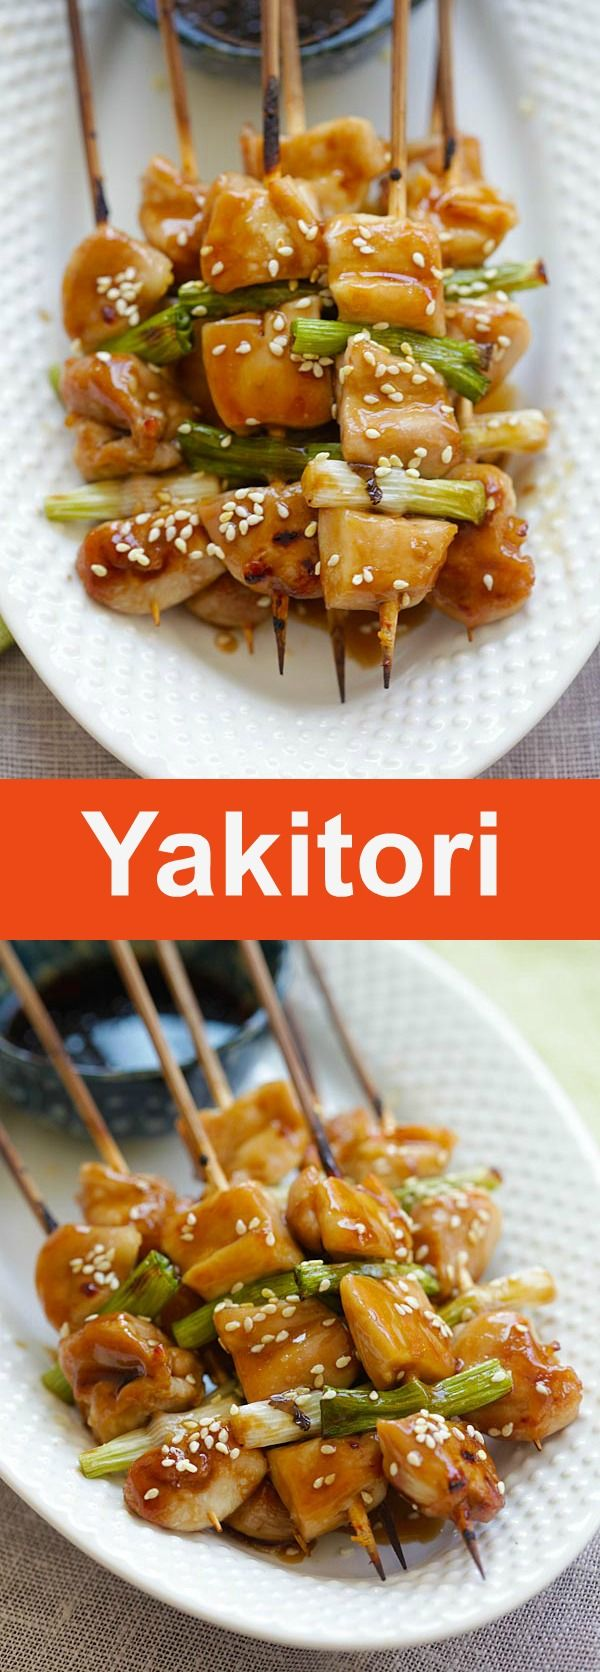 Yakitori – Yakitori is Japanese grilled chicken skewers. Learn how to make them with this easy Yakitori recipe that takes only 15 mins | rasamalaysia.com